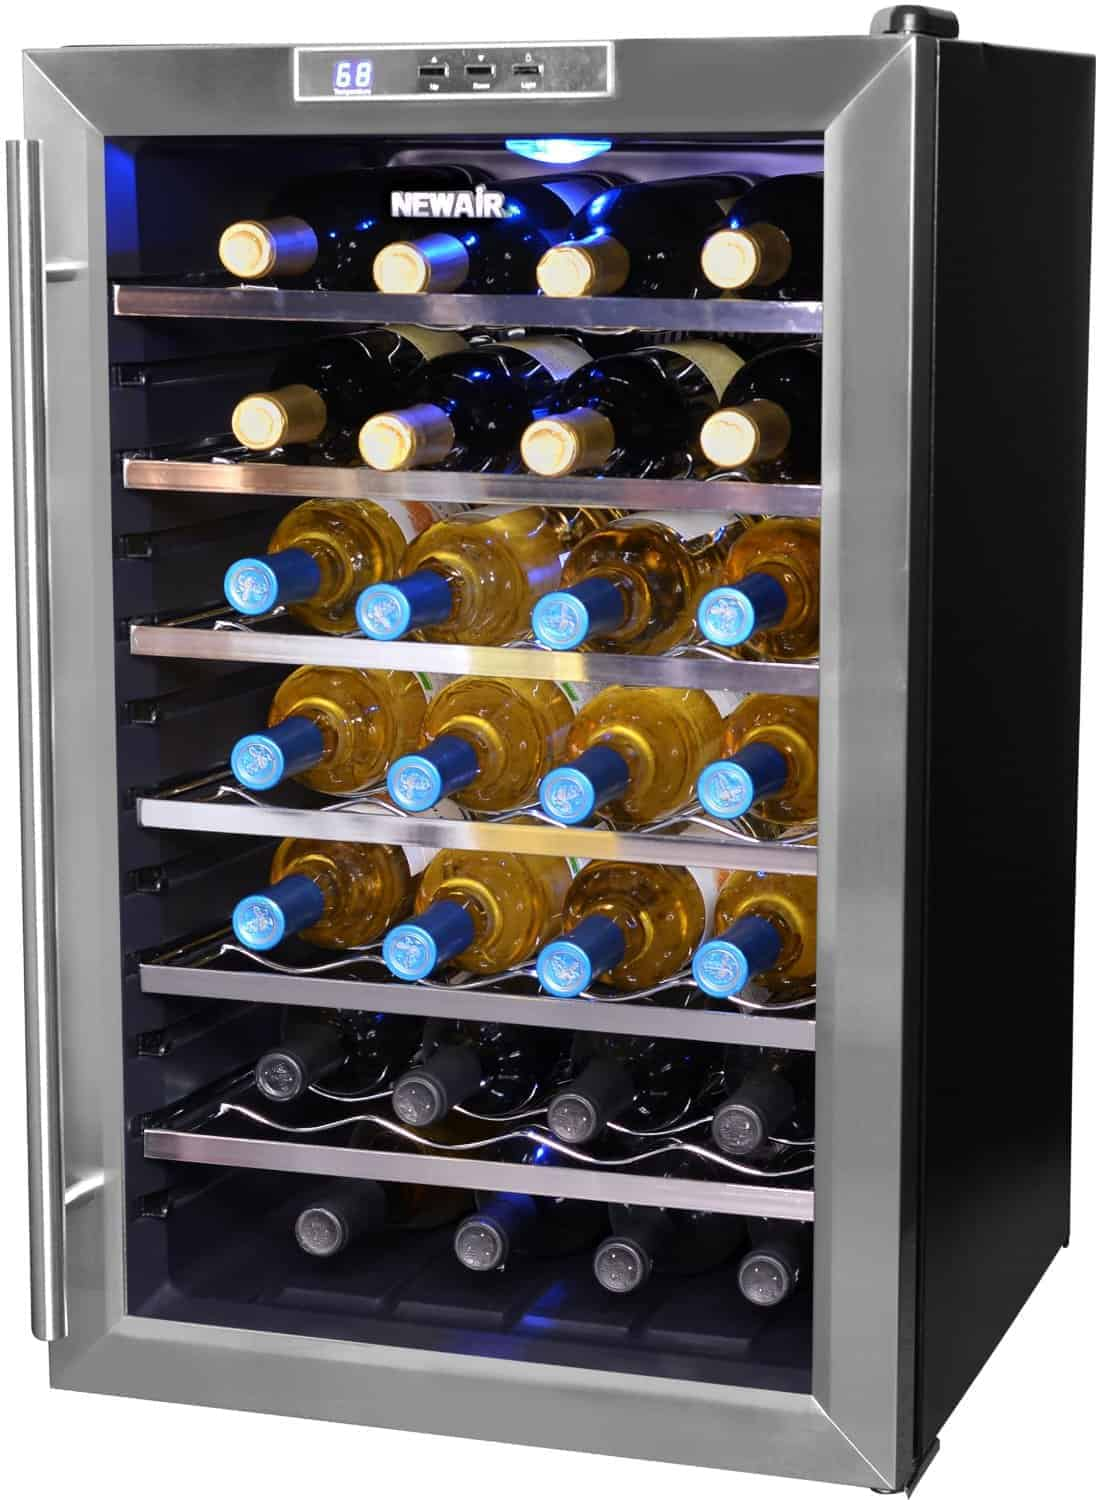 countertop refrigerator touchscreen wine bottle zoom asp cooler silent preparing enthusiast